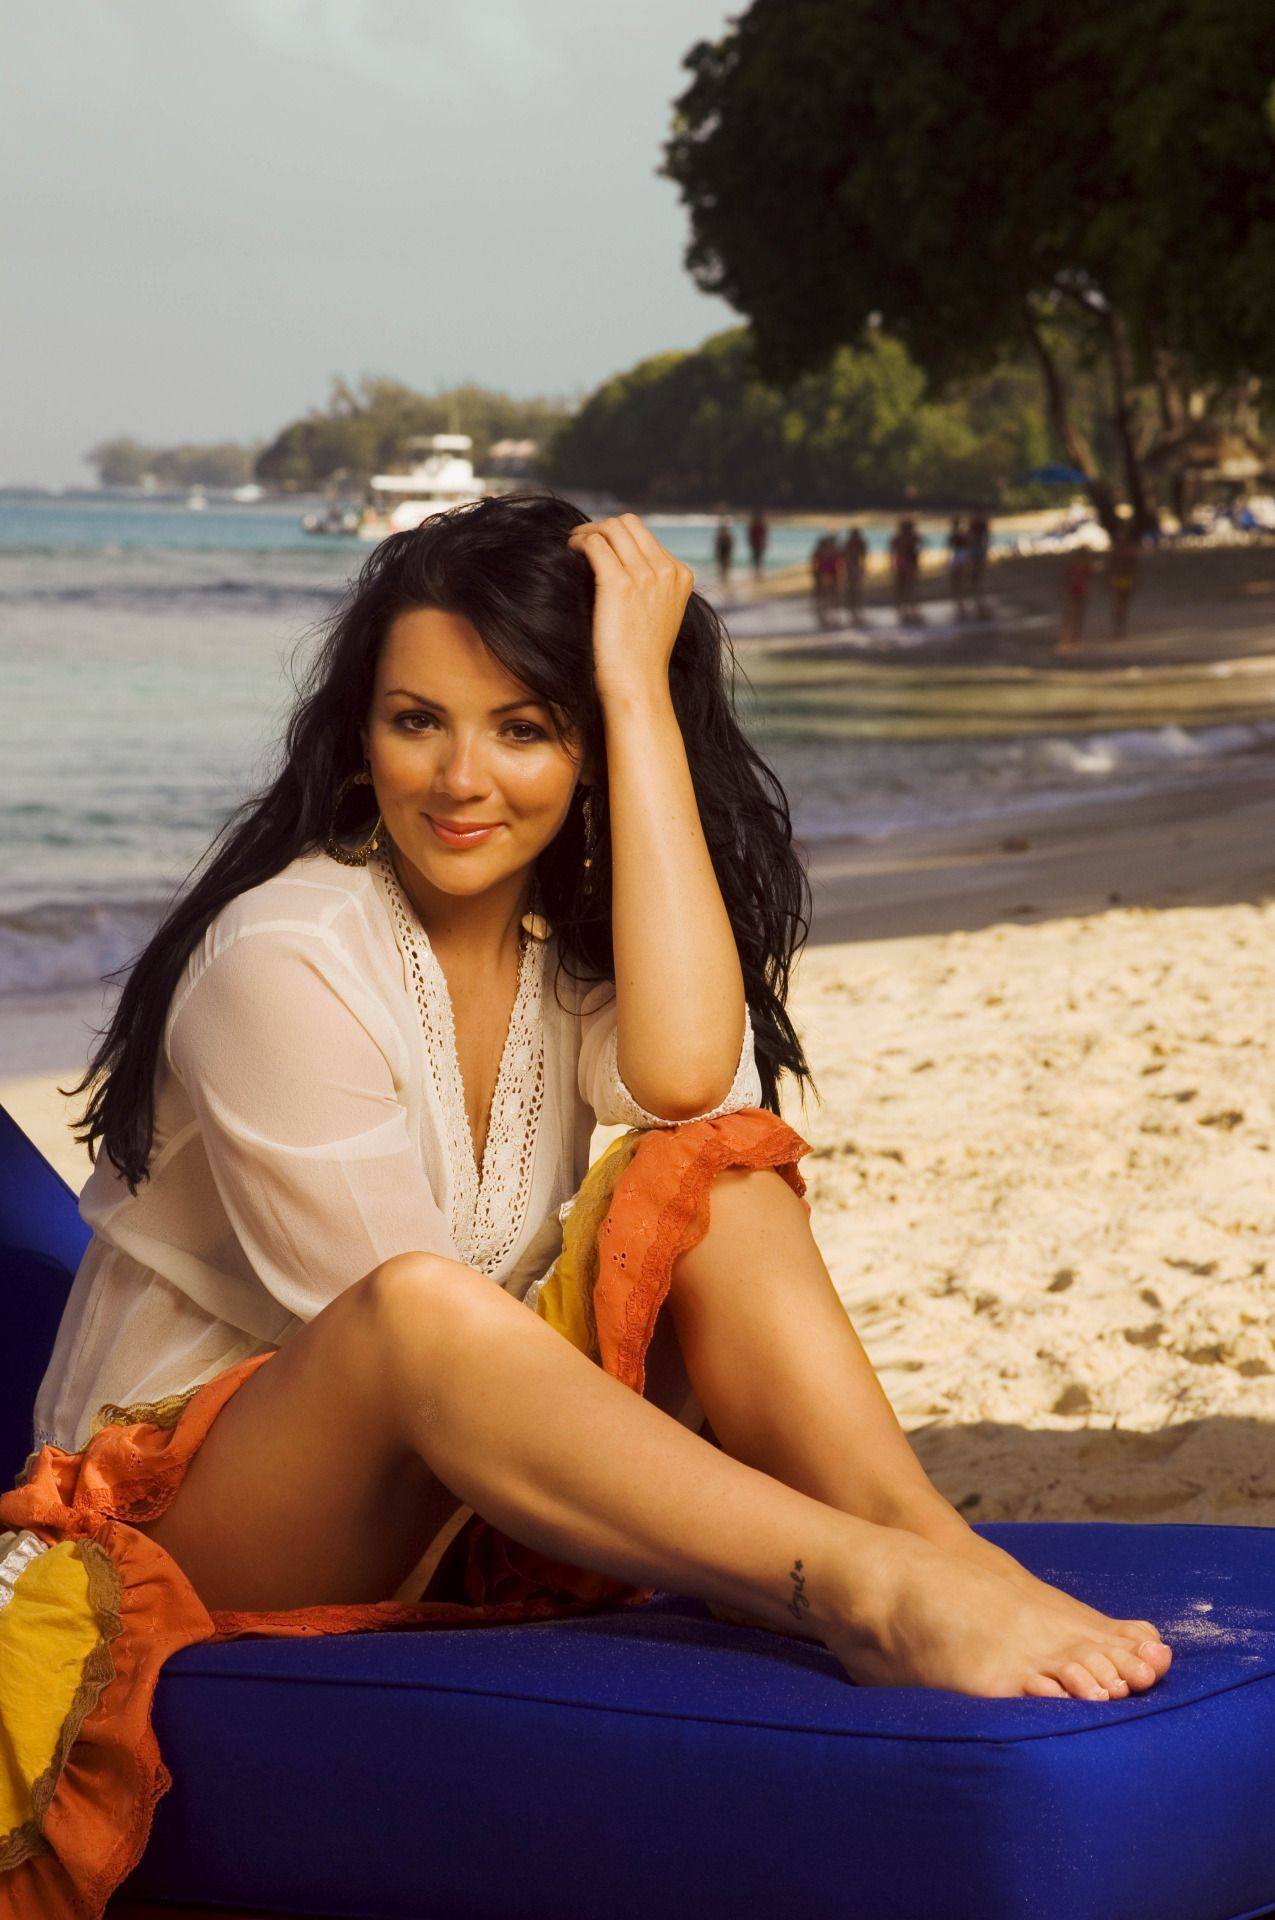 Martine McCutcheon (born 1976)